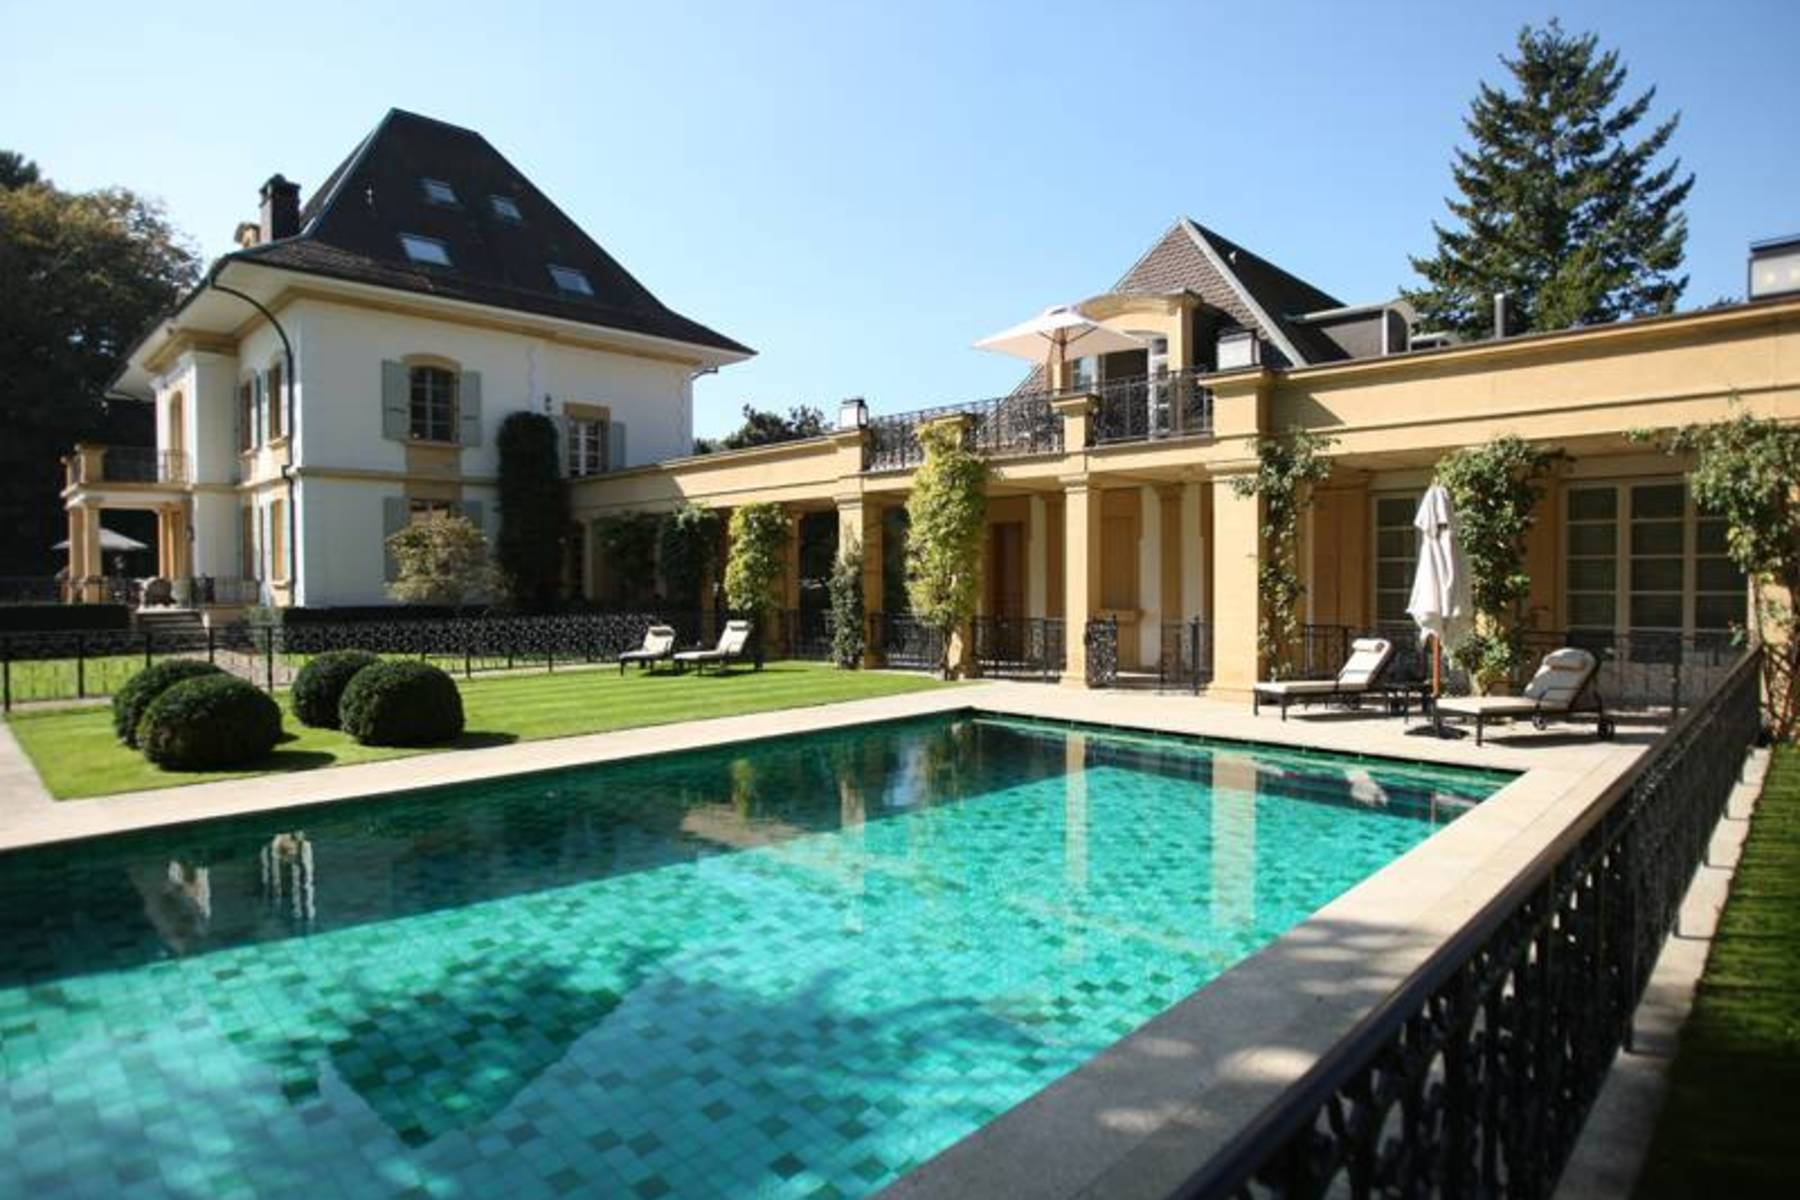 Single Family Home for Sale at LUXURY WATERFRONT PROPERTY Gland Gland, Vaud, 1196 Switzerland